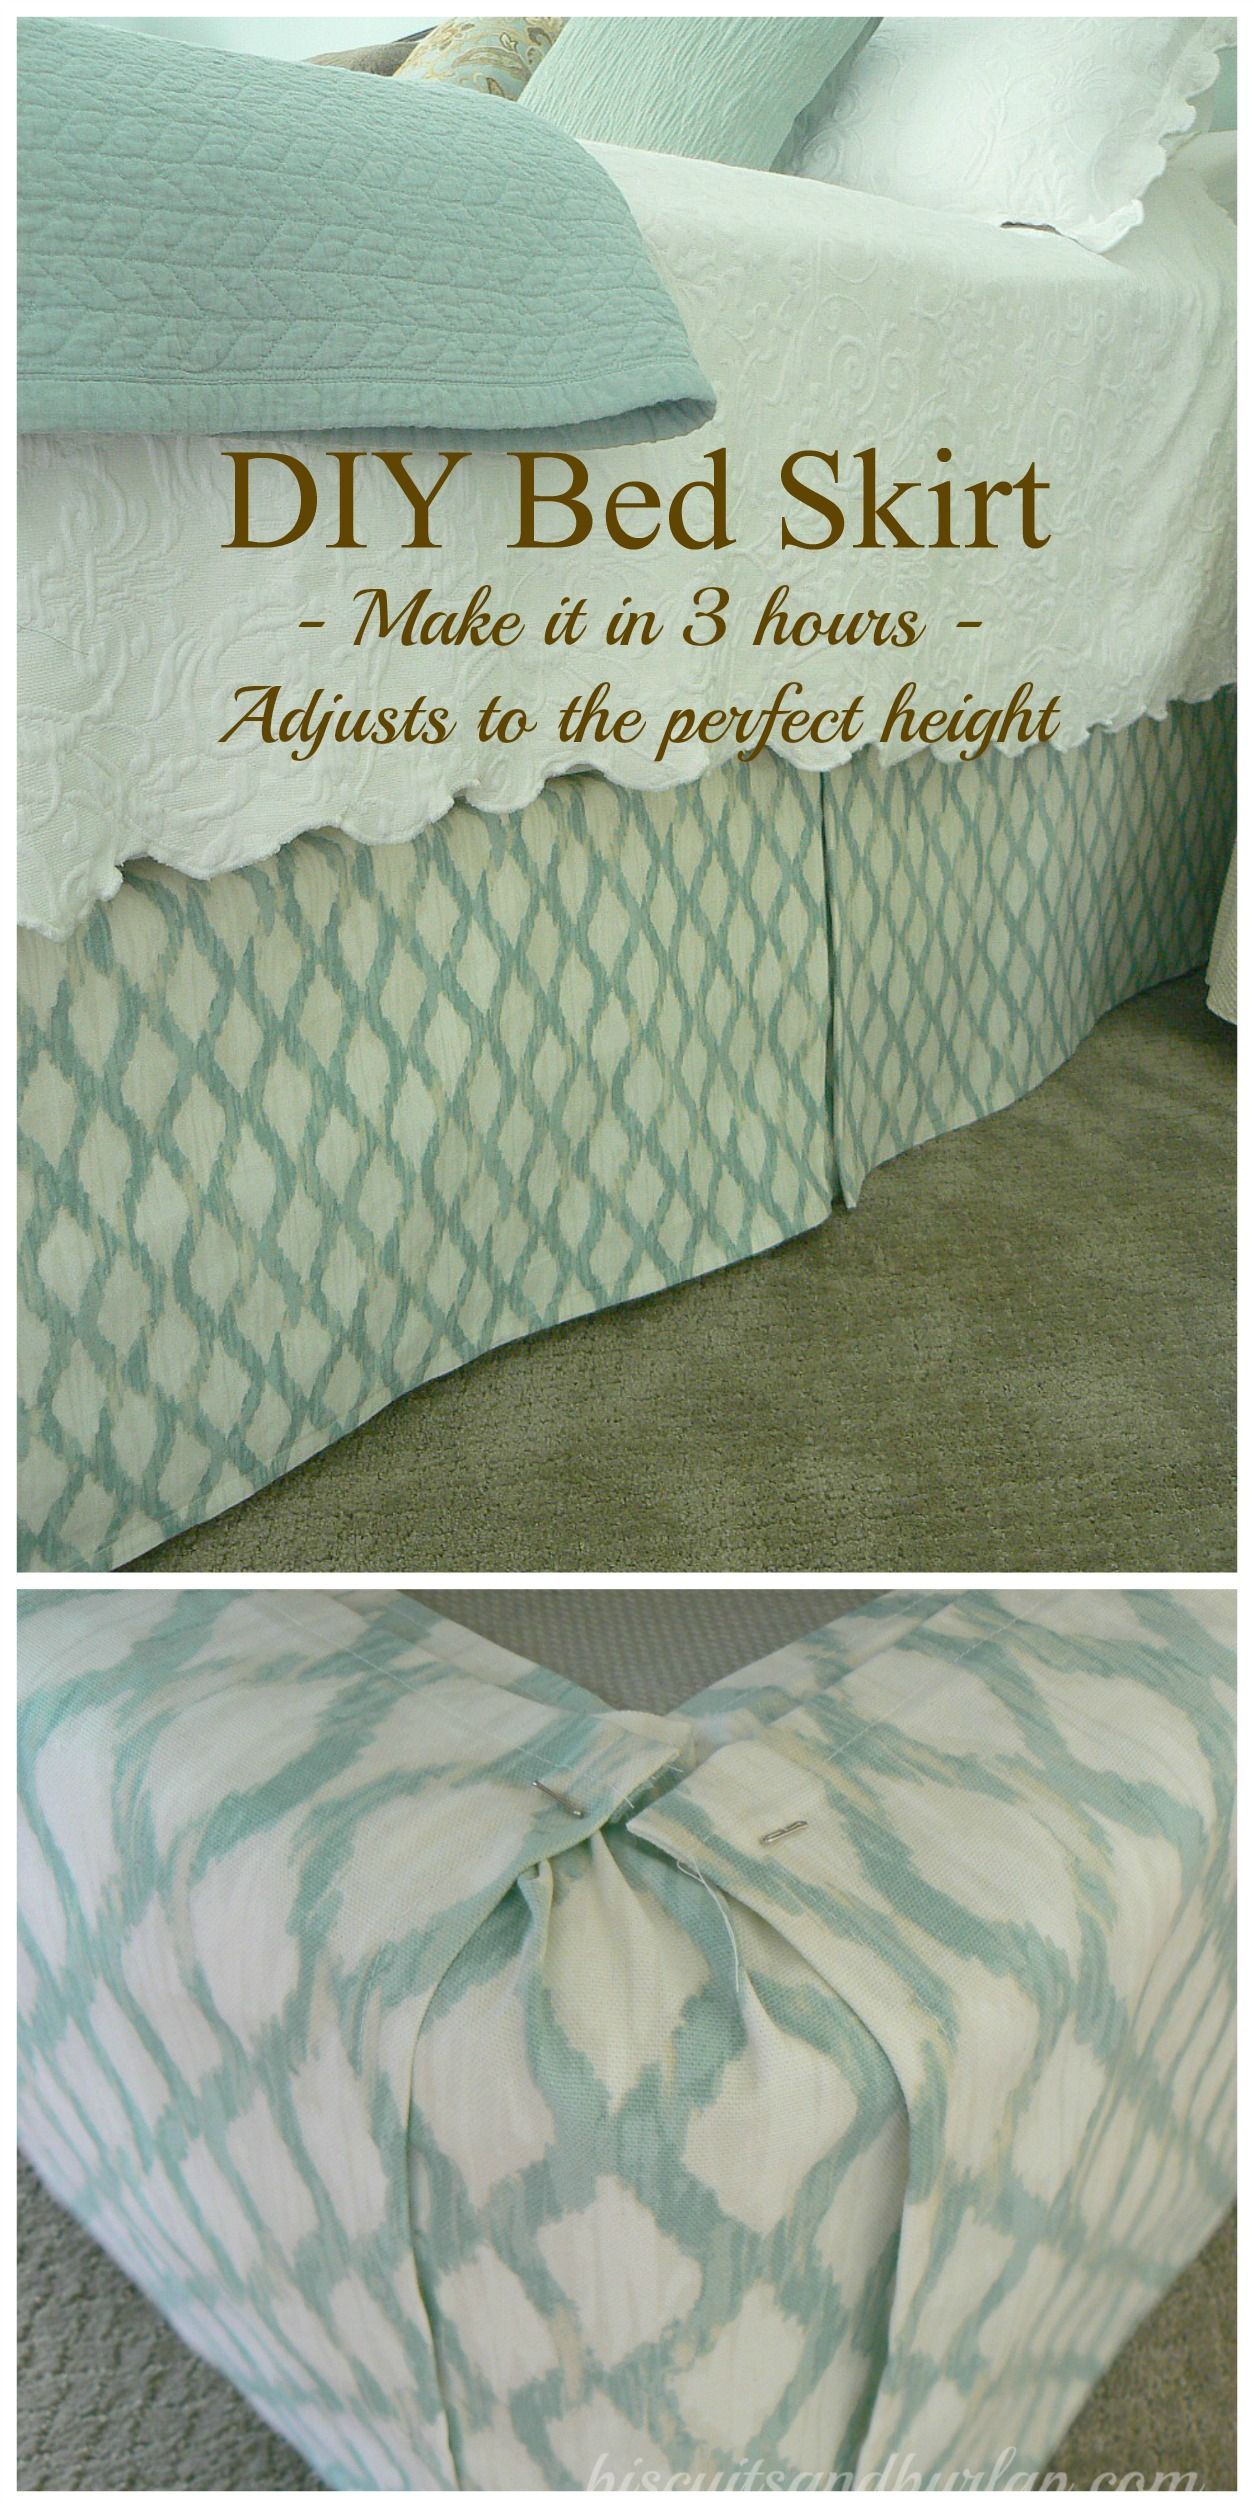 How To Make A Diy Bed Skirt Best Of Biscuits Burlap Pinterest